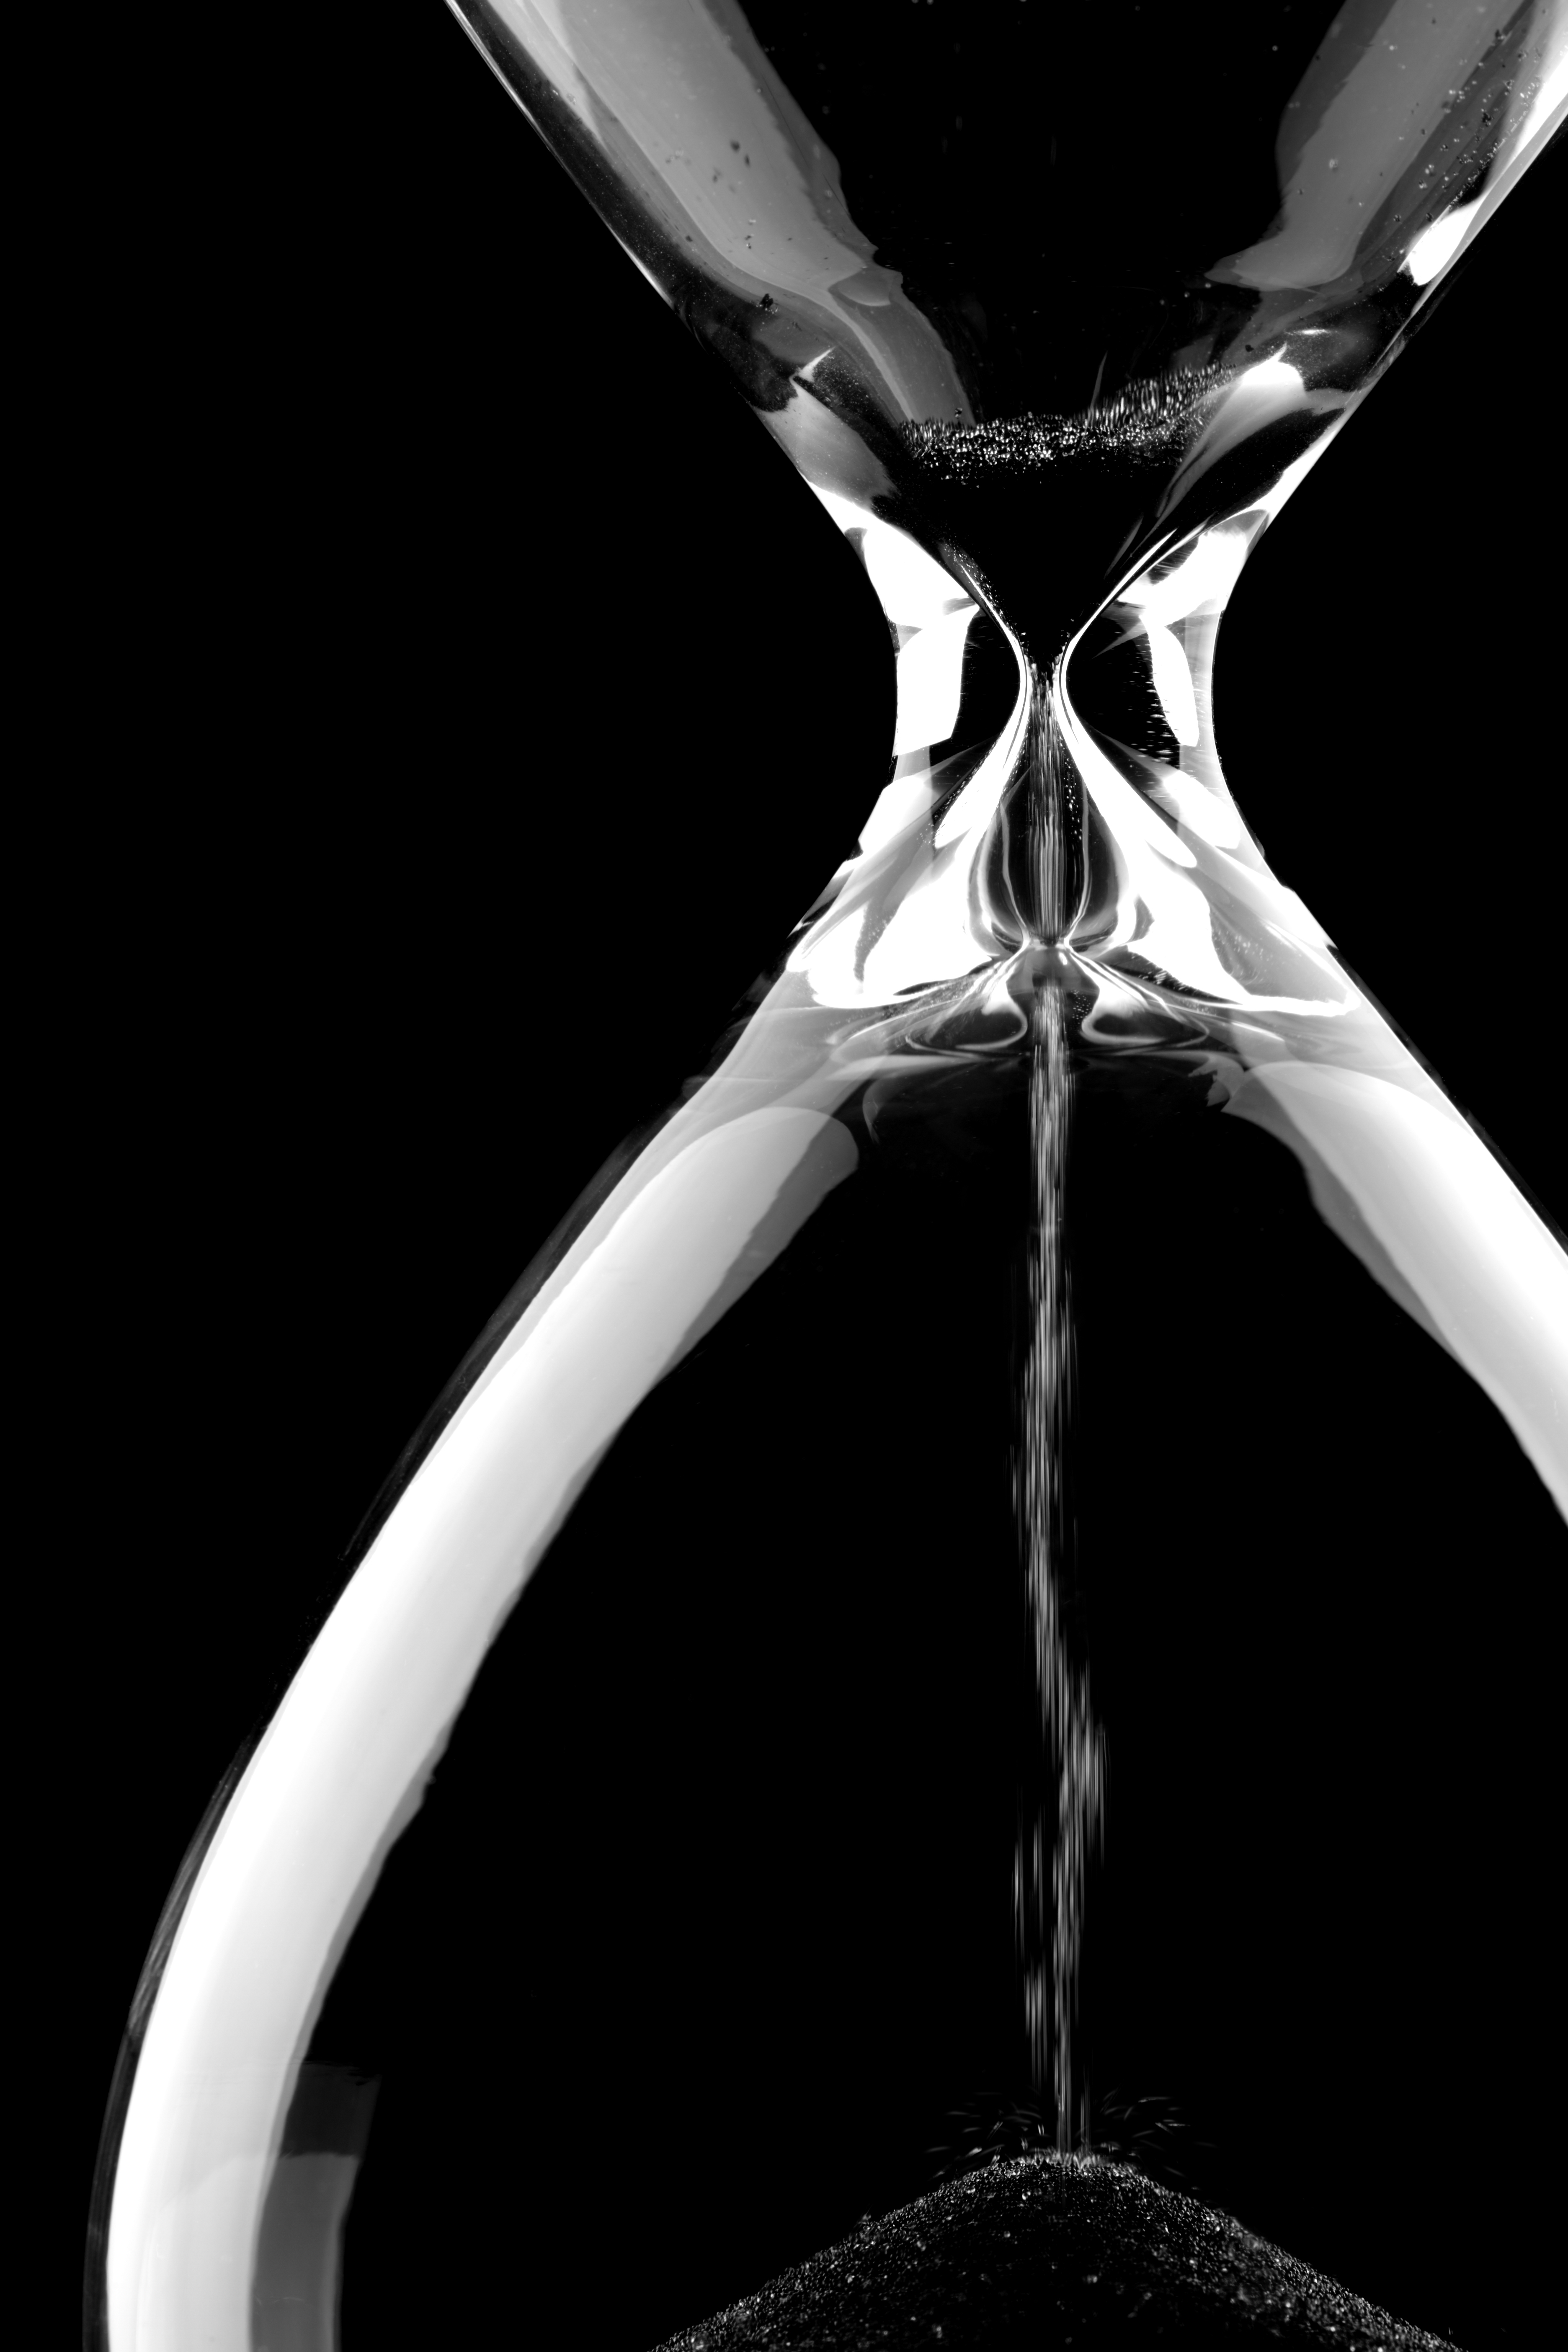 Sand flowing through an hourglass on black background concept for time running out